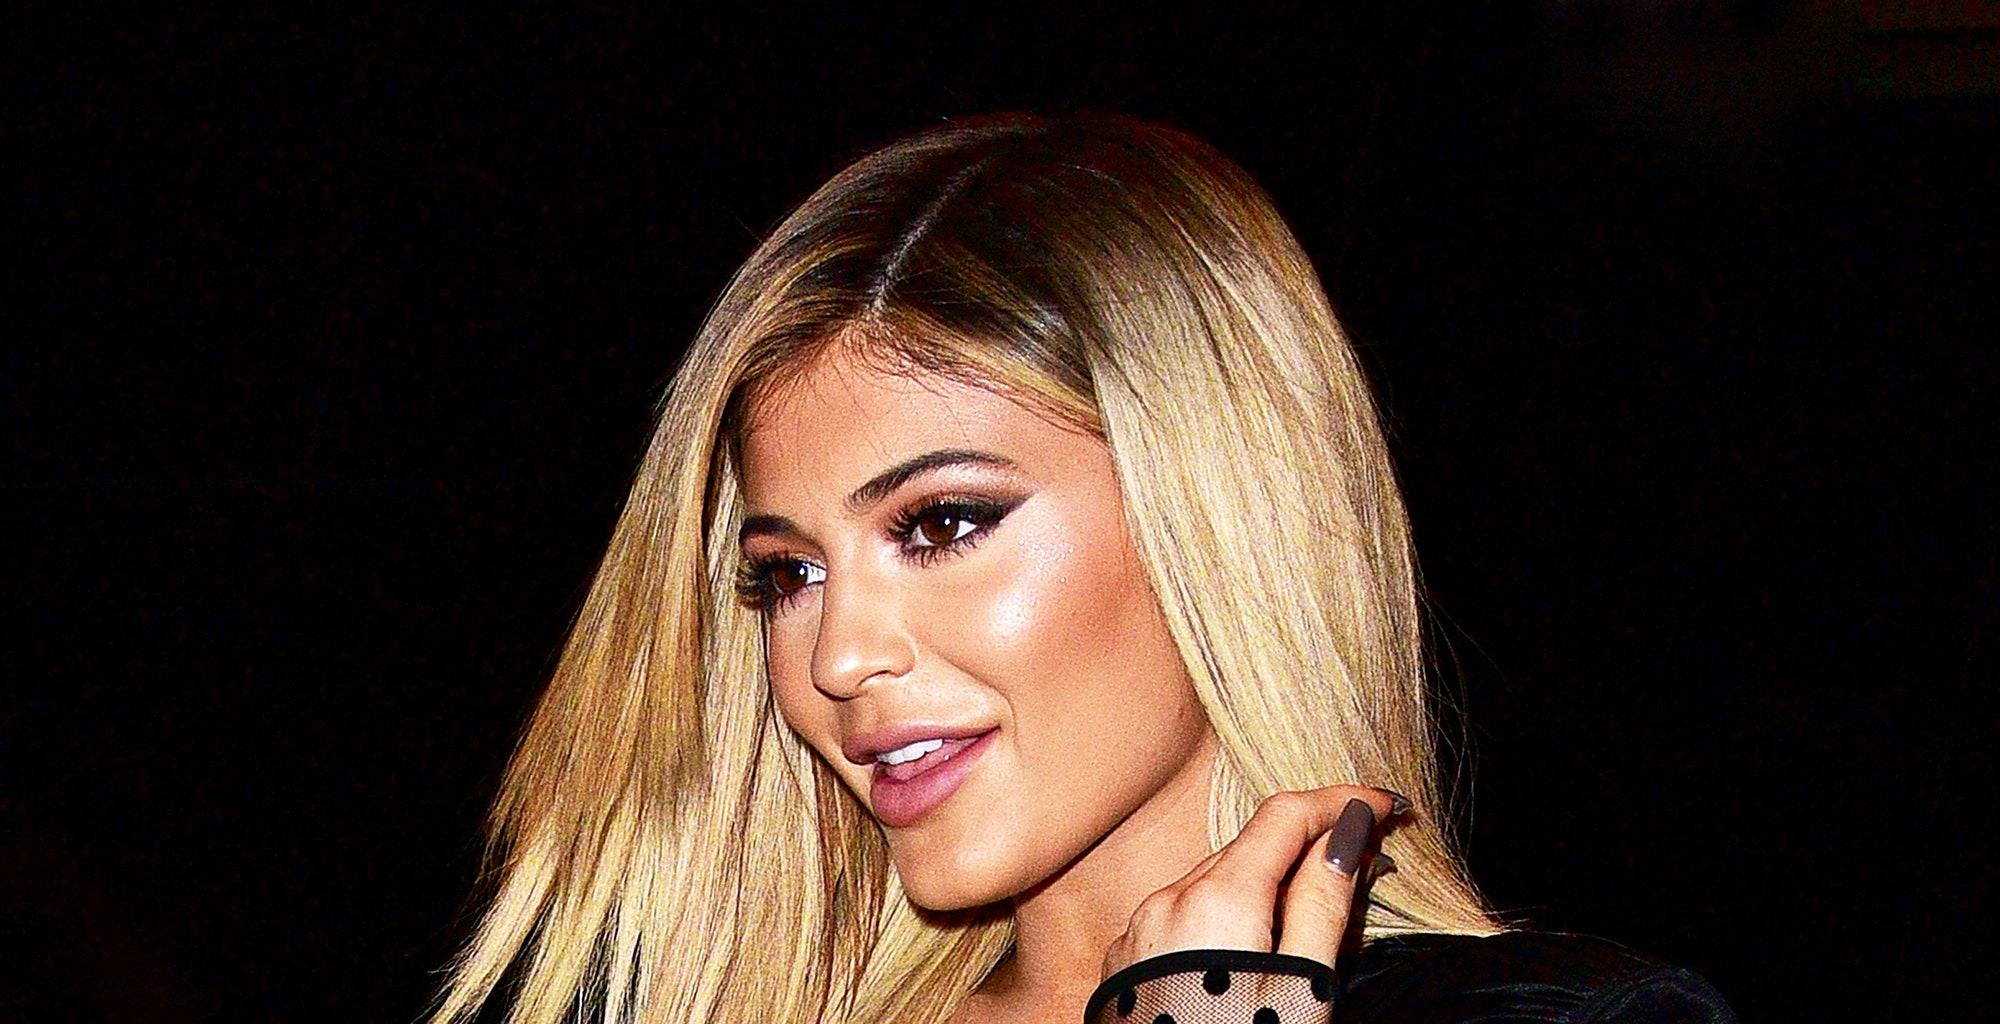 Kylie Jenner's Fans Defend Her After The Latest Move For Which She Received Backlash